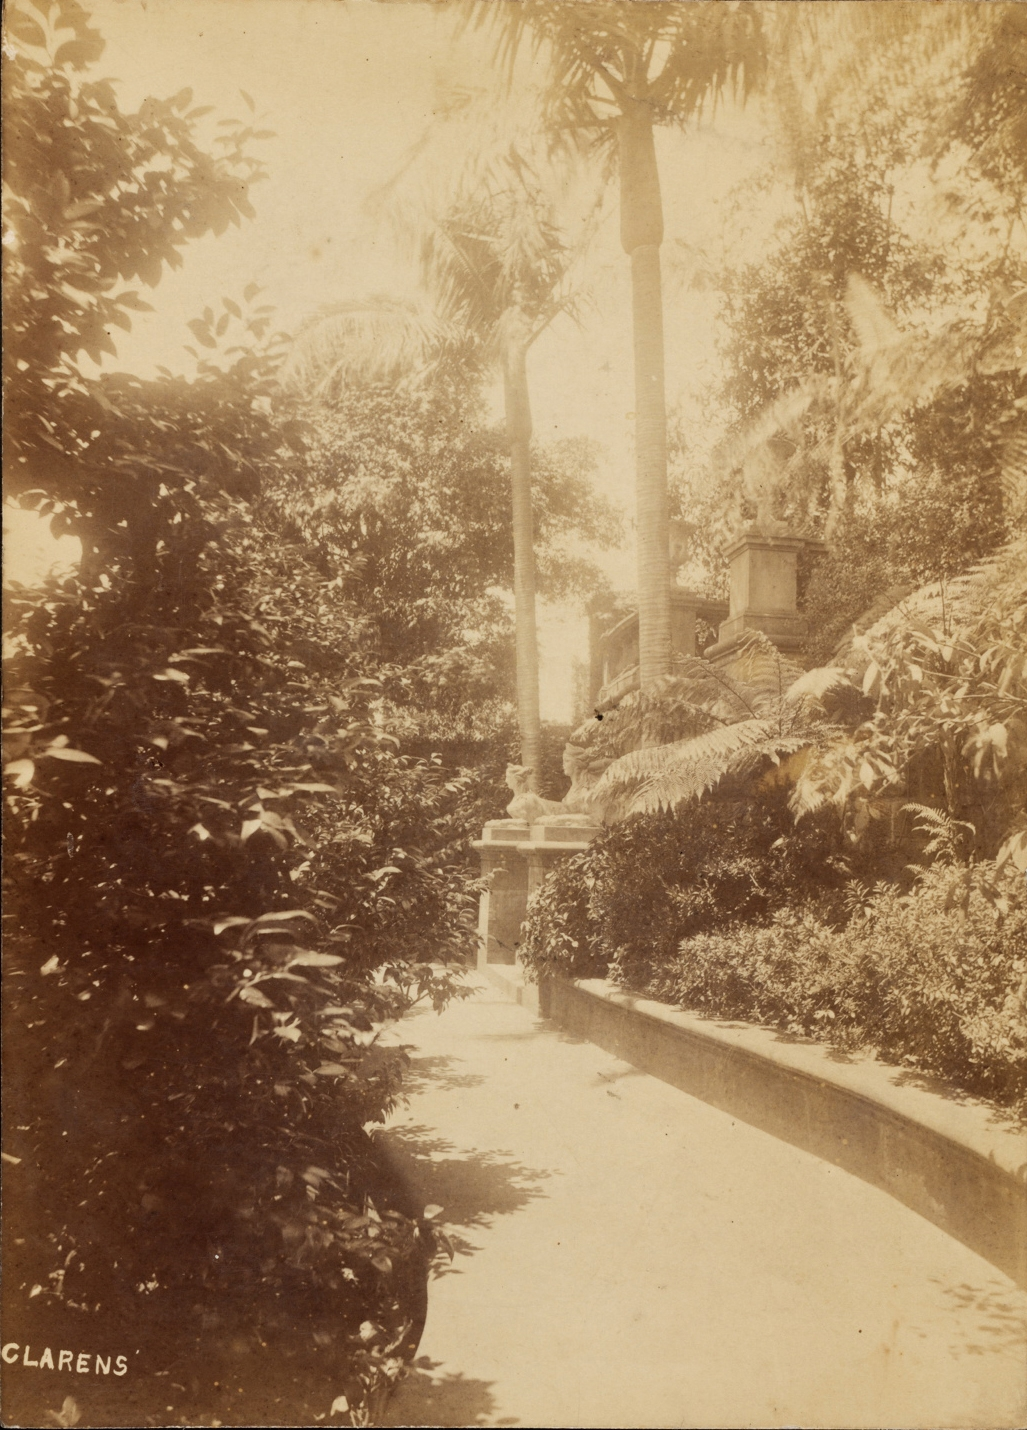 Black and white photograph of the garden at Clarens.